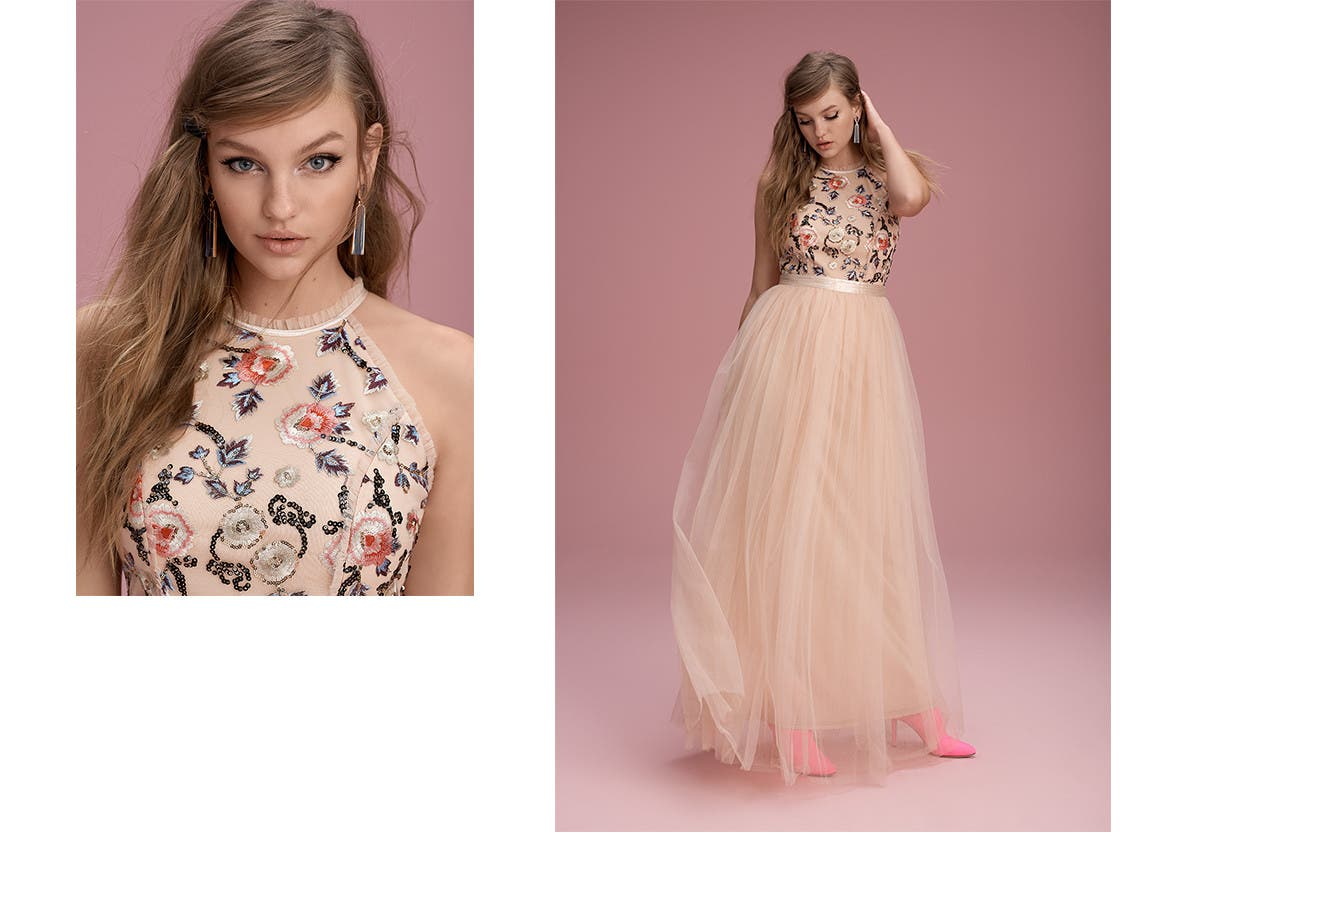 Awesome Nordstrom Dresses Prom Ideas - Styles & Ideas 2018 - sperr.us